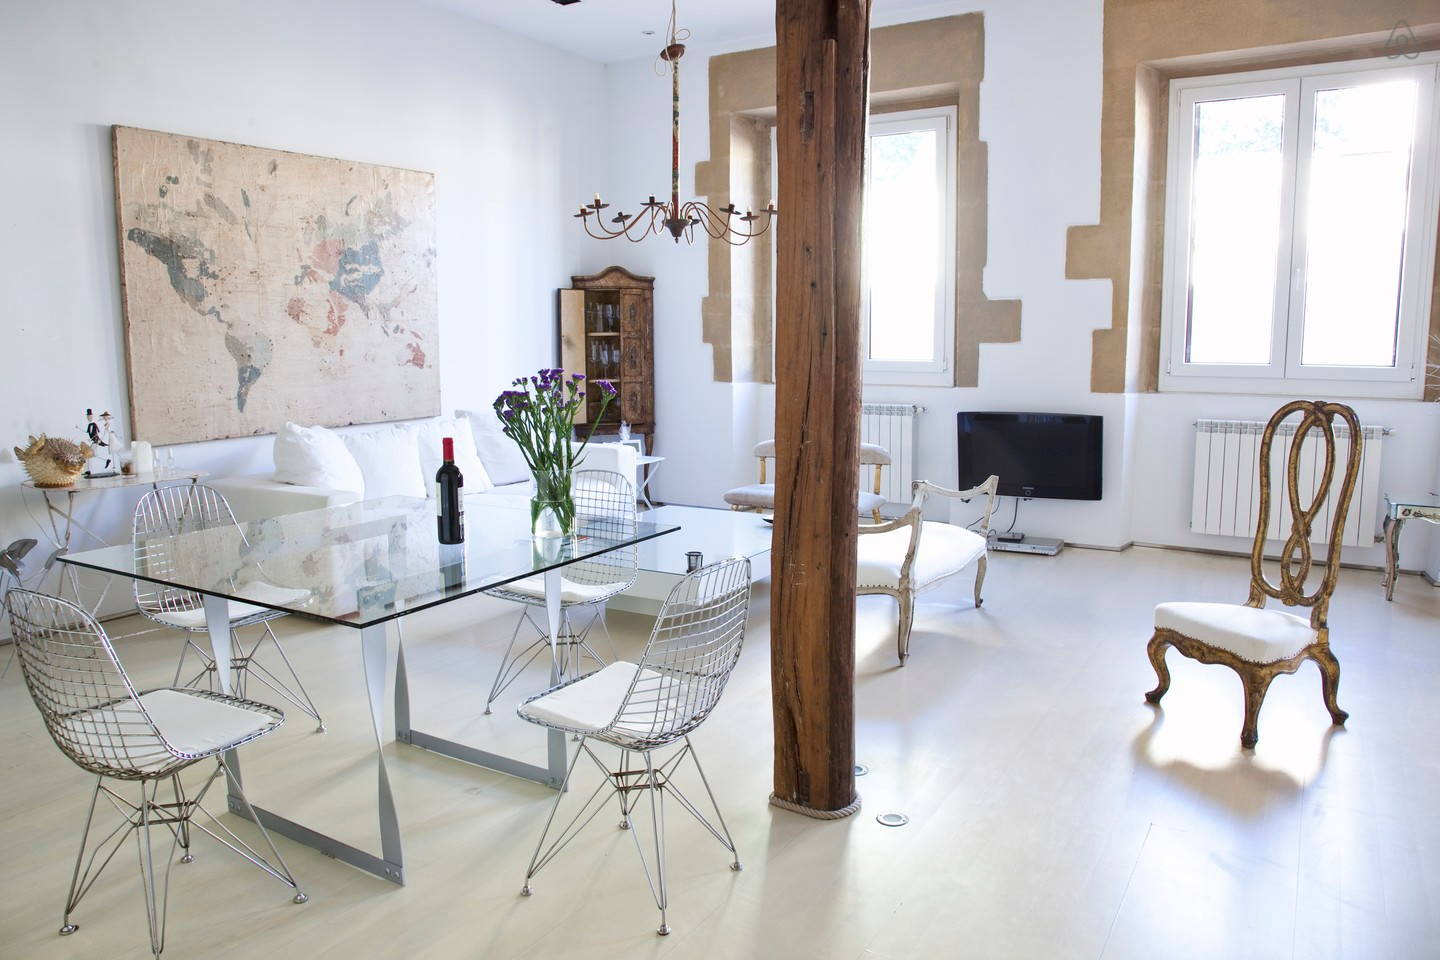 San Sebastian besto location old town luxury loft